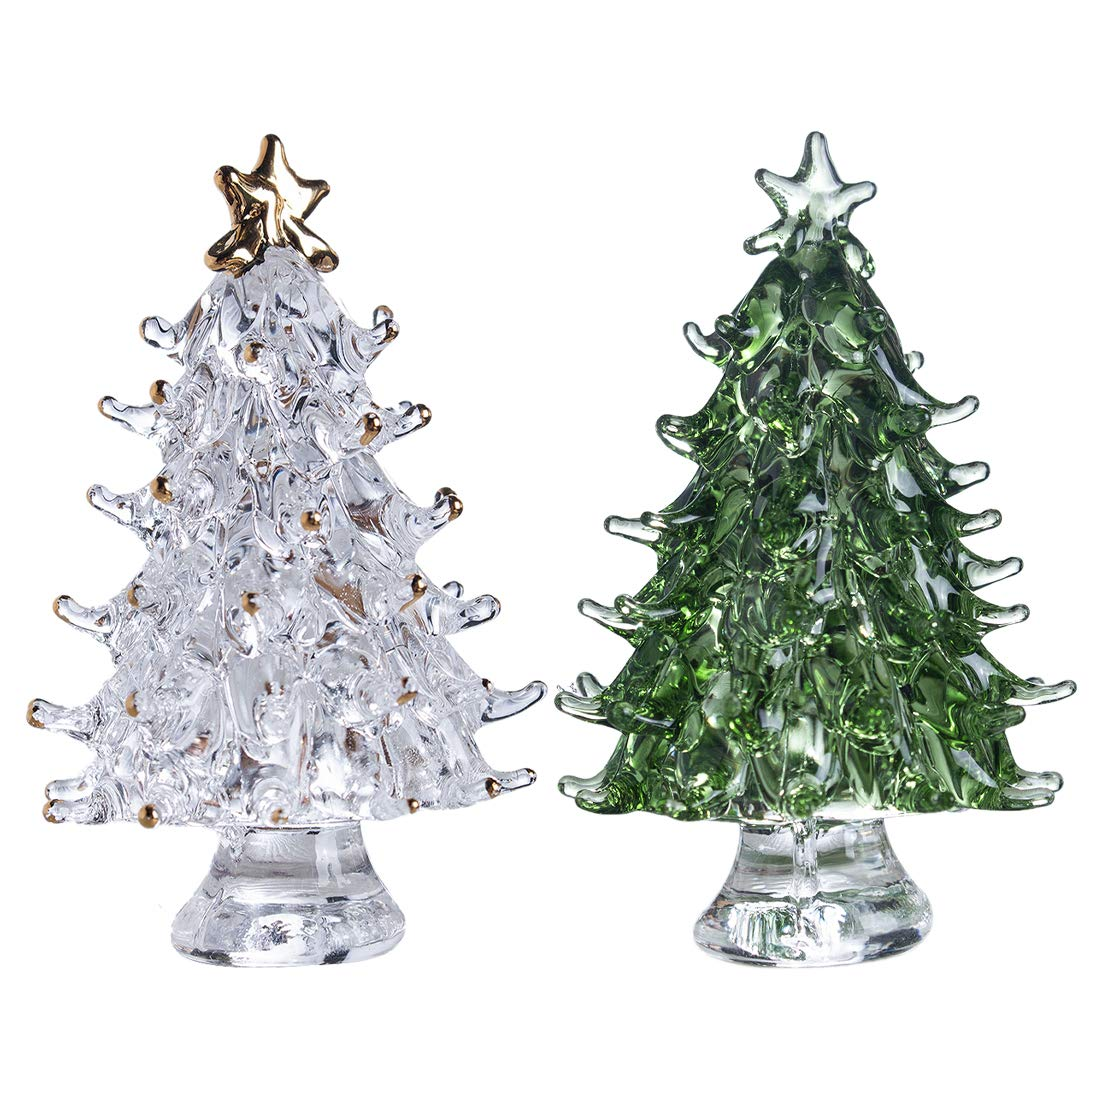 H&D Crystal Glass Christmas Tree Figurines,Pack of 2